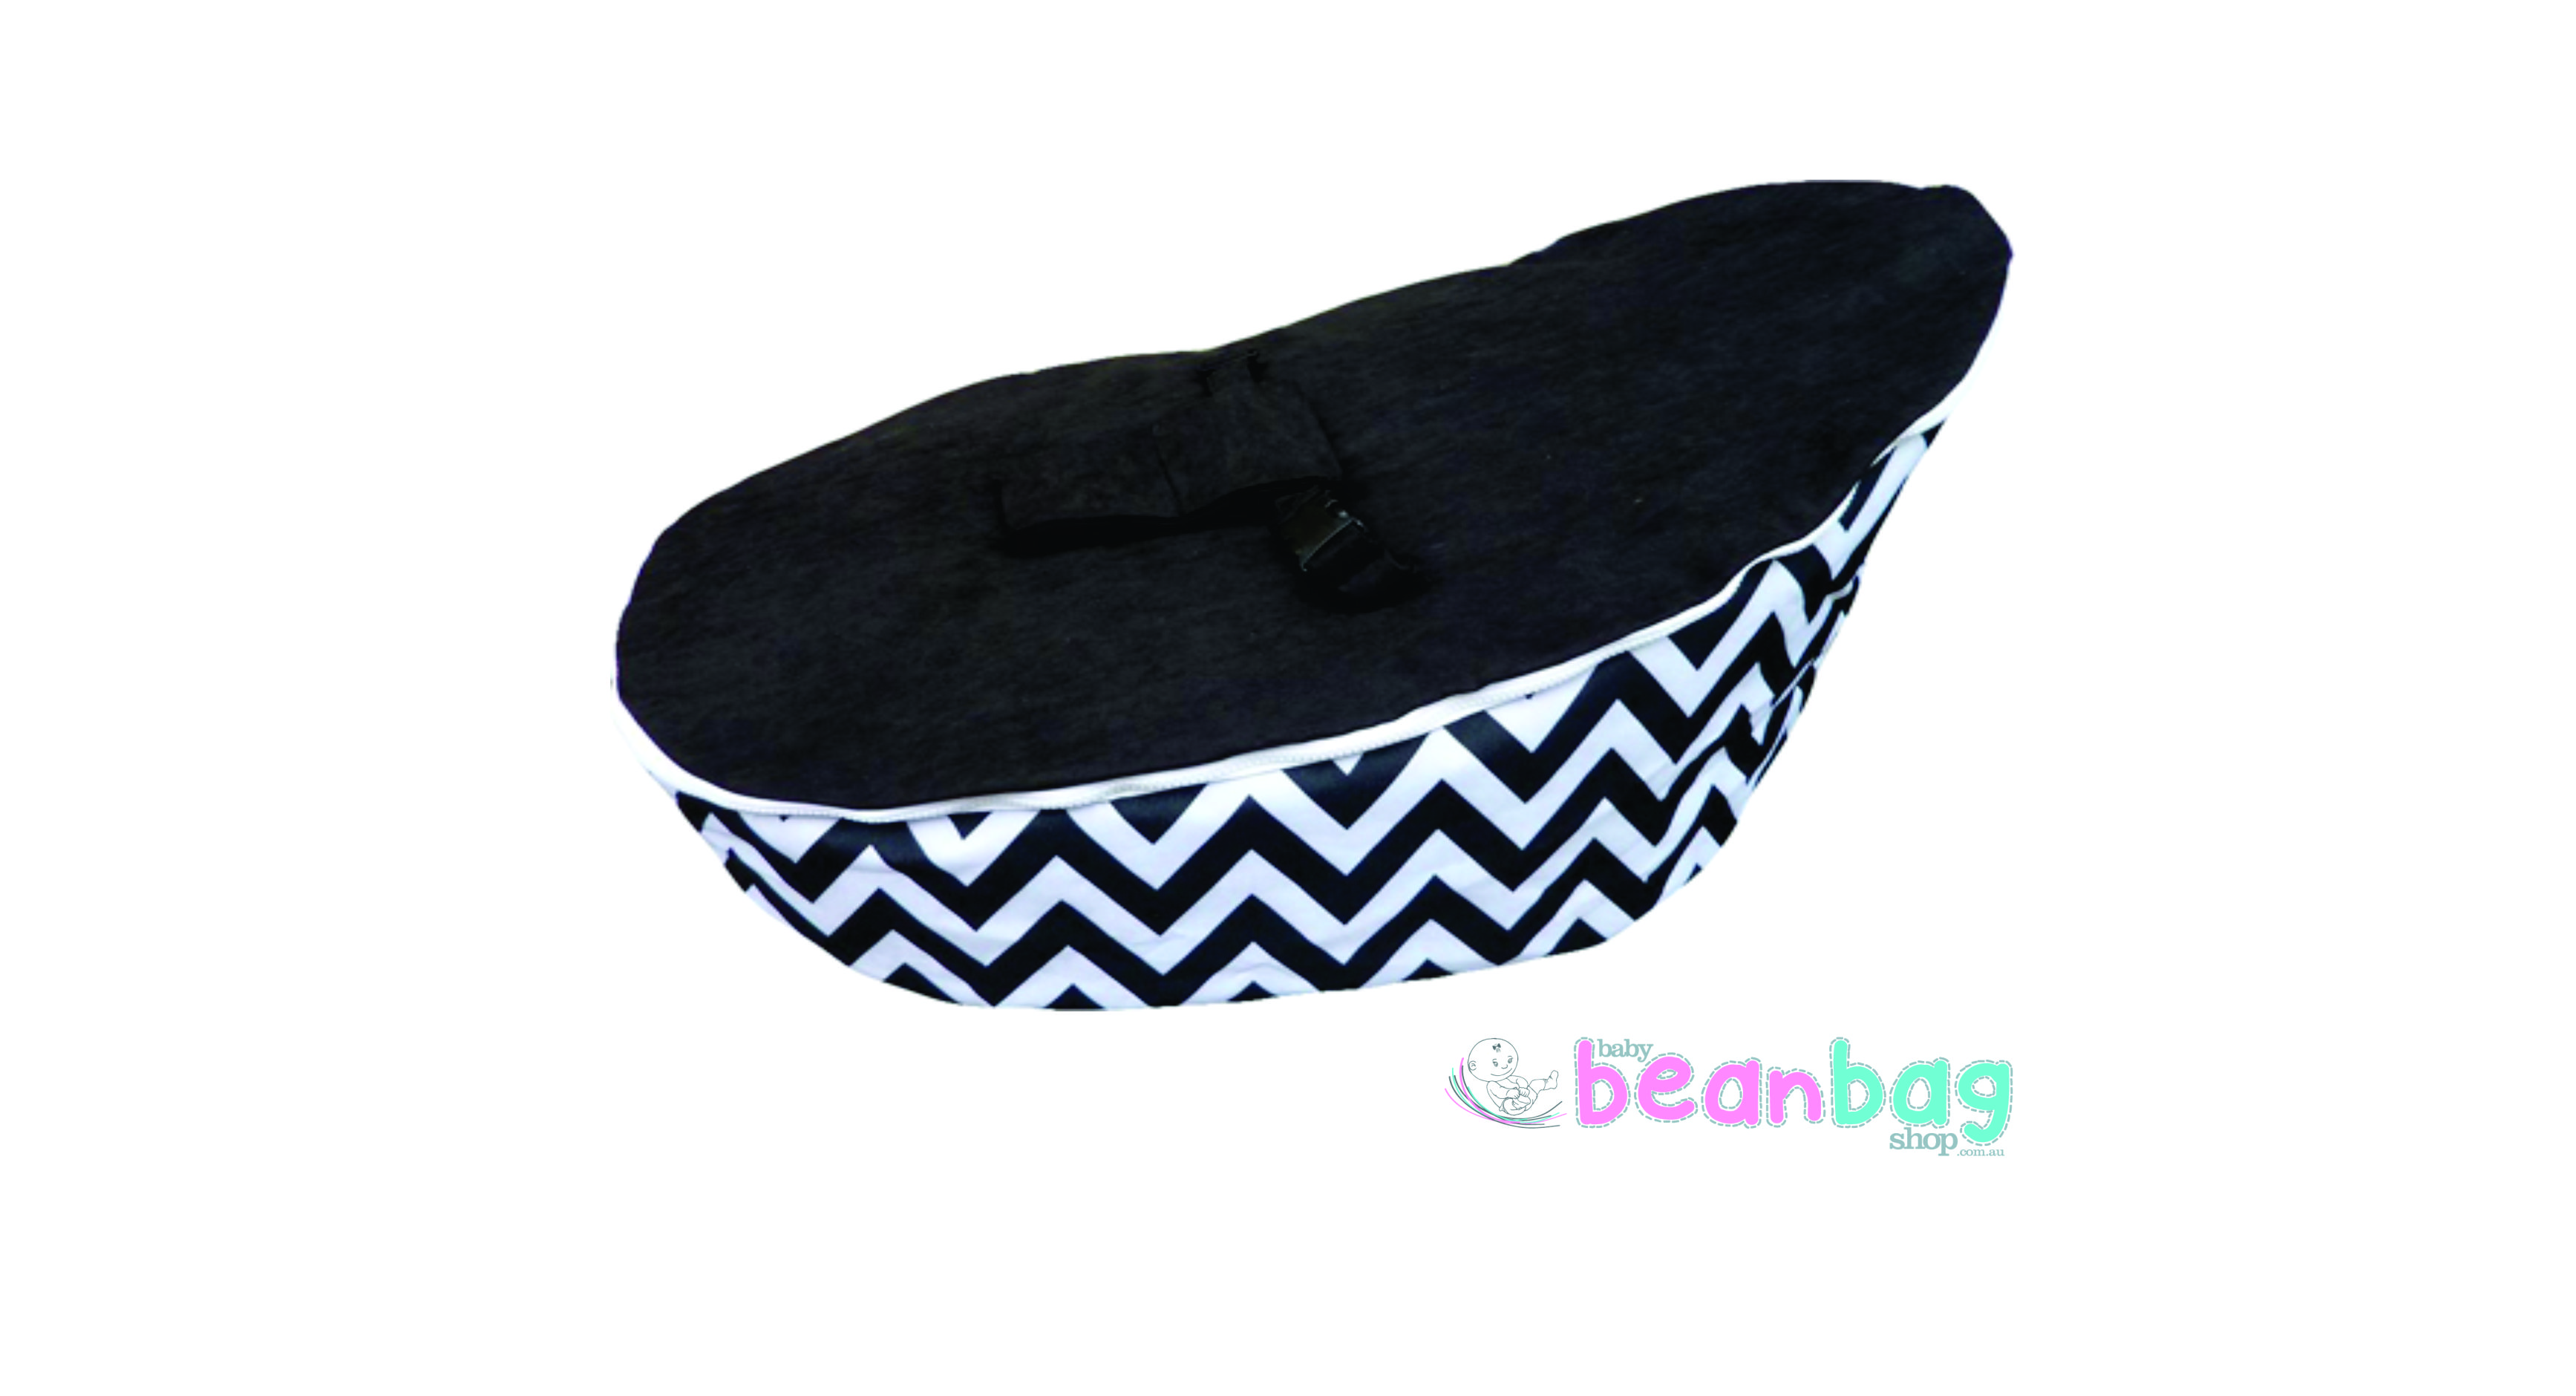 Cool Bean Bags Australia Bubba Beanbags Baby Bean Bags Product Safety Australia